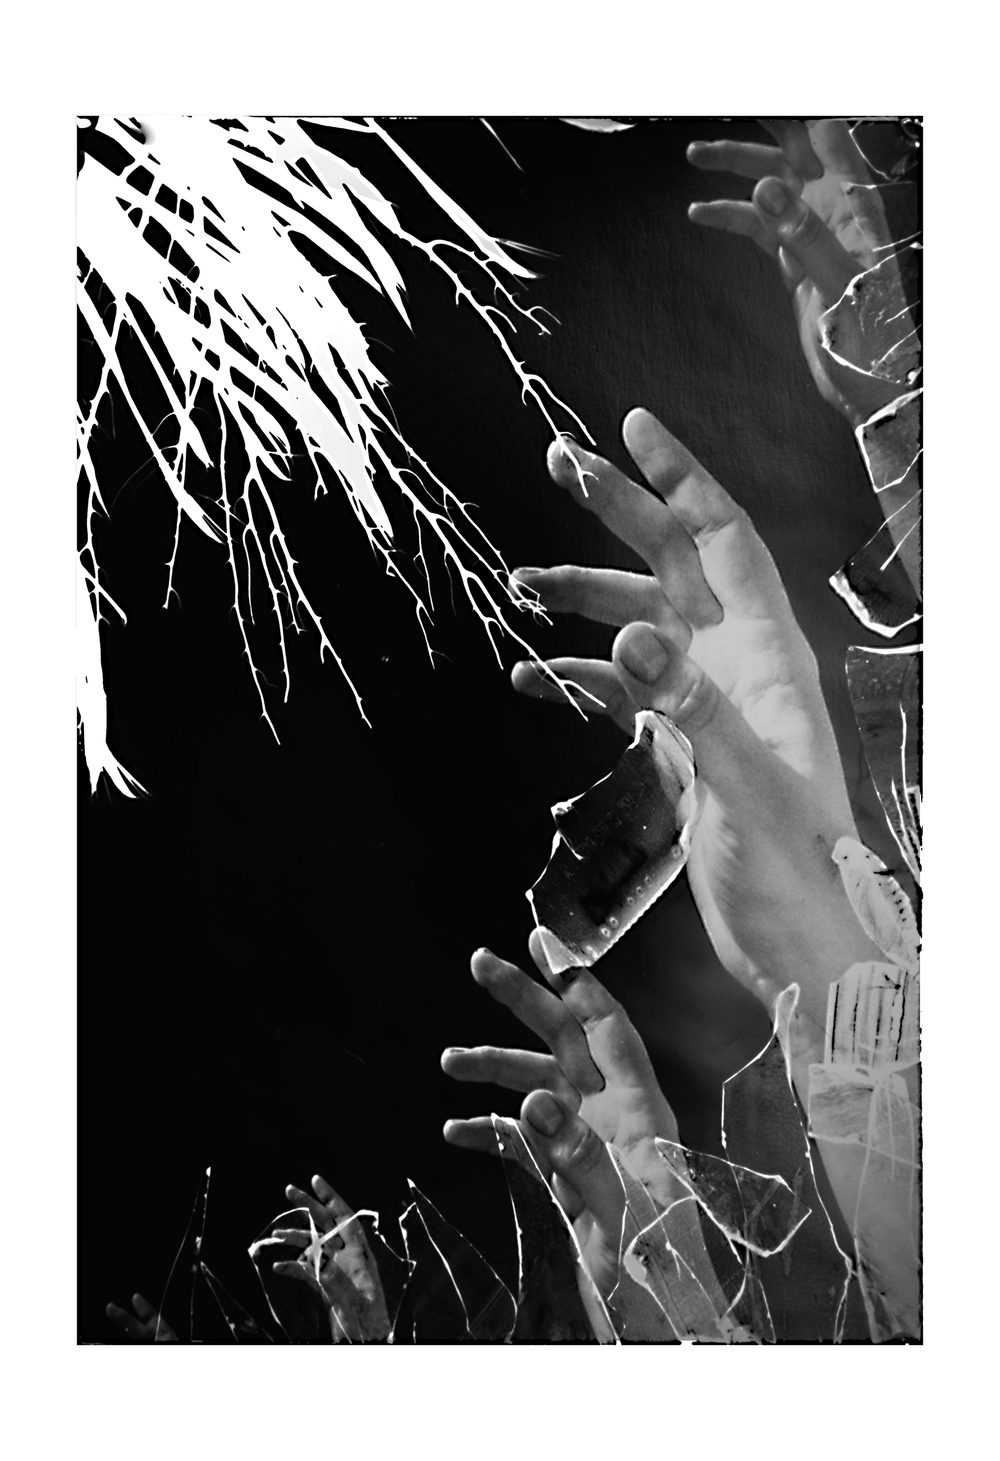 Photogram Digital Negative Composite